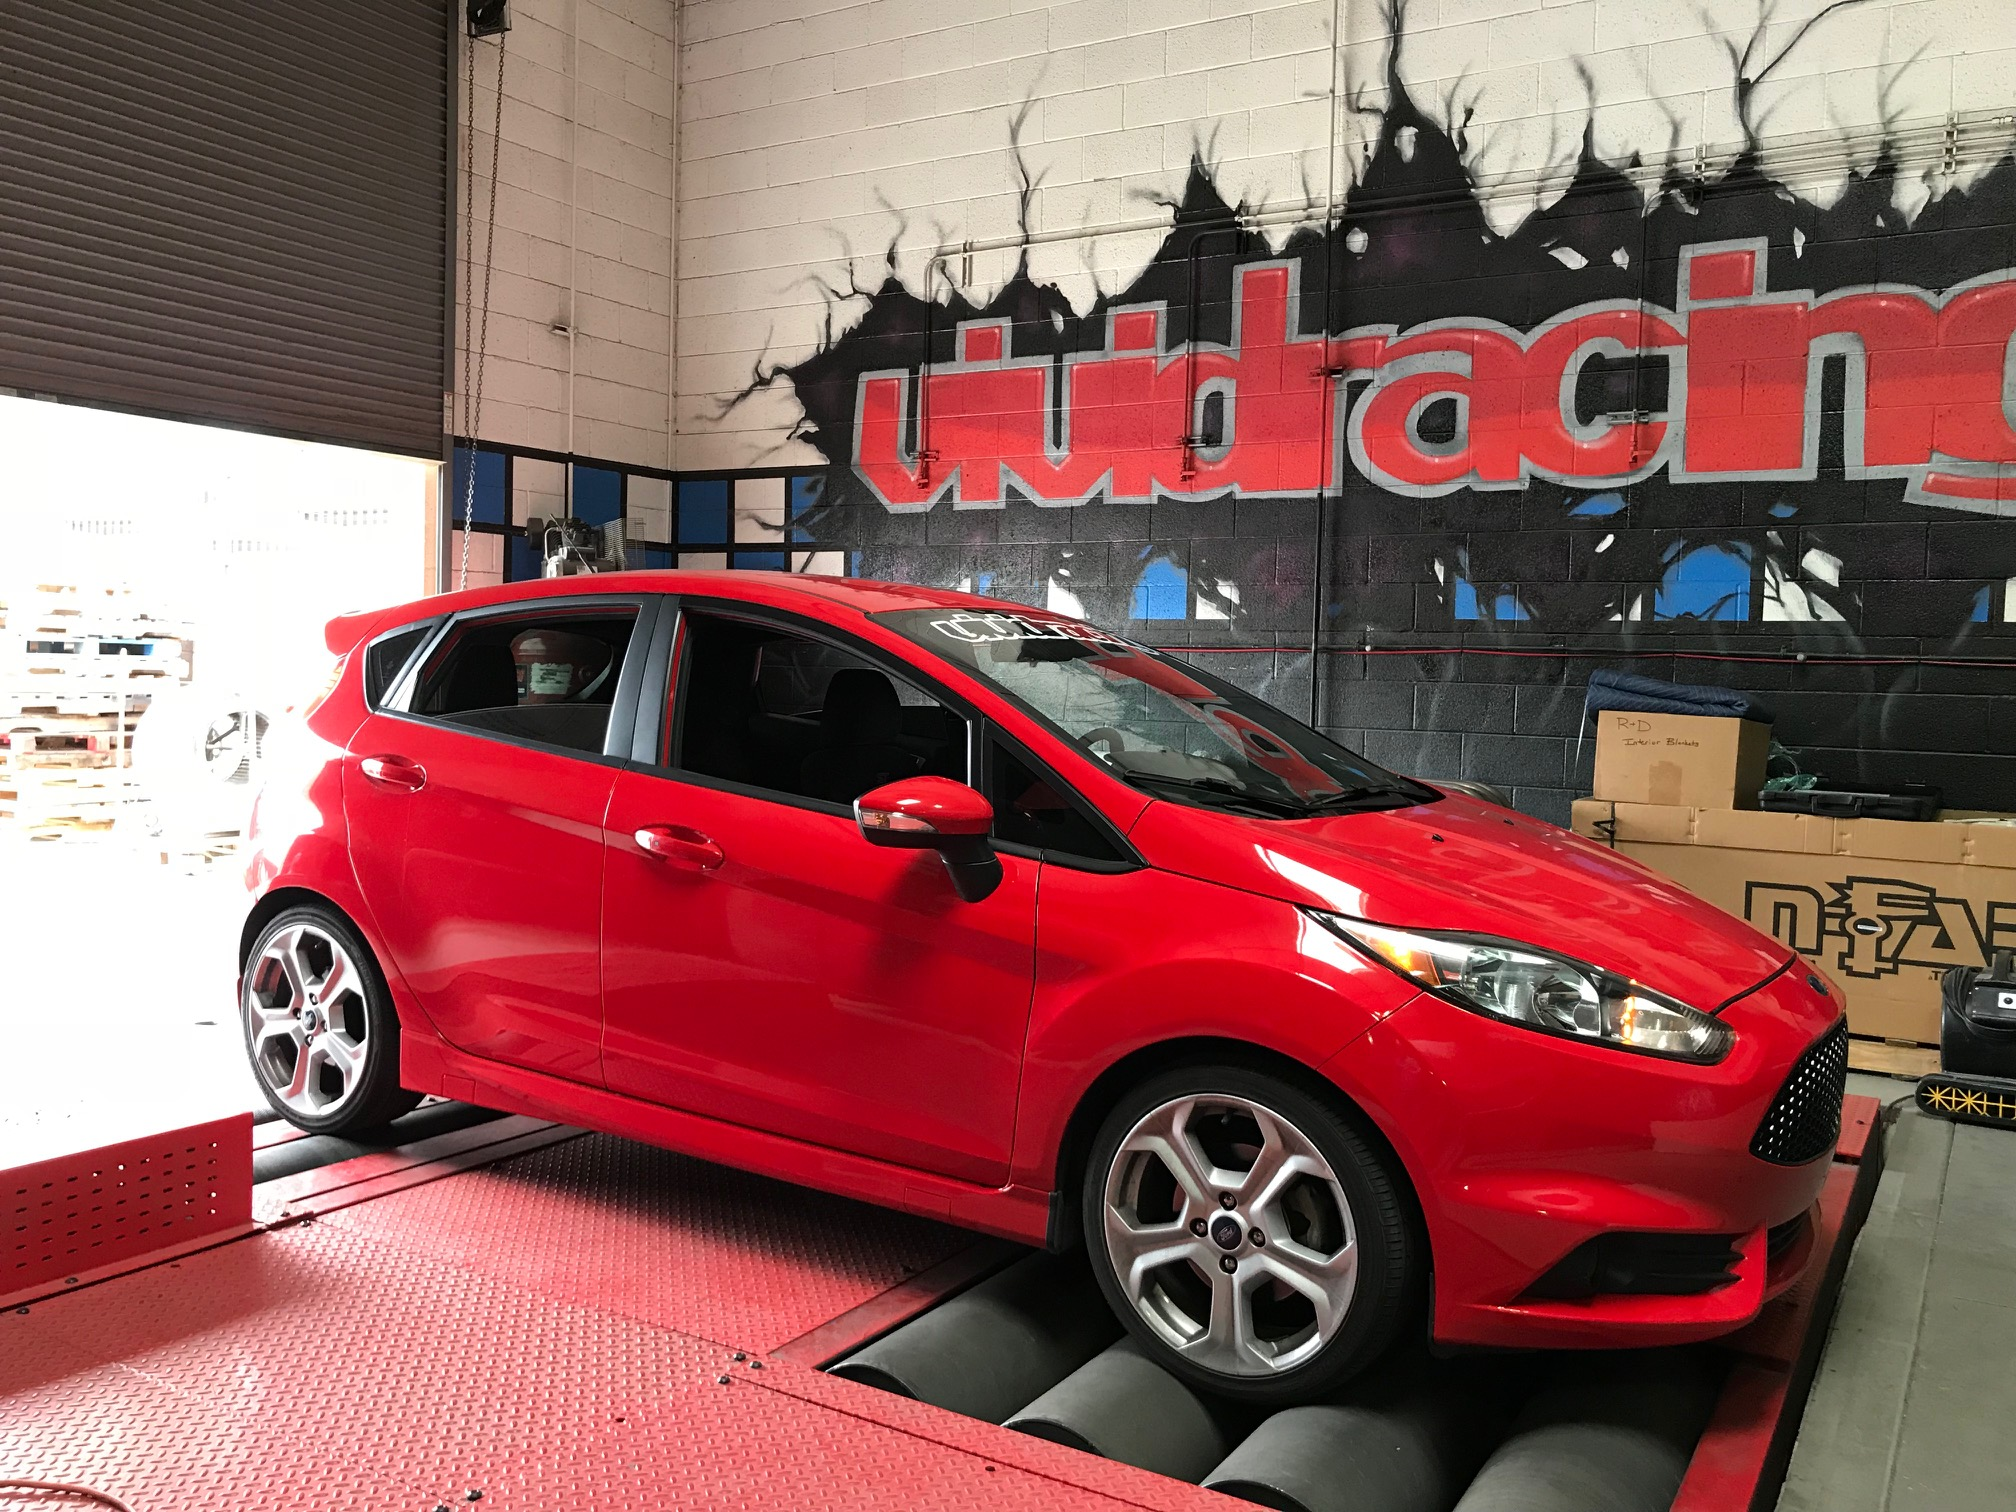 ford fiesta st ecu tuning by vr tuned. Black Bedroom Furniture Sets. Home Design Ideas